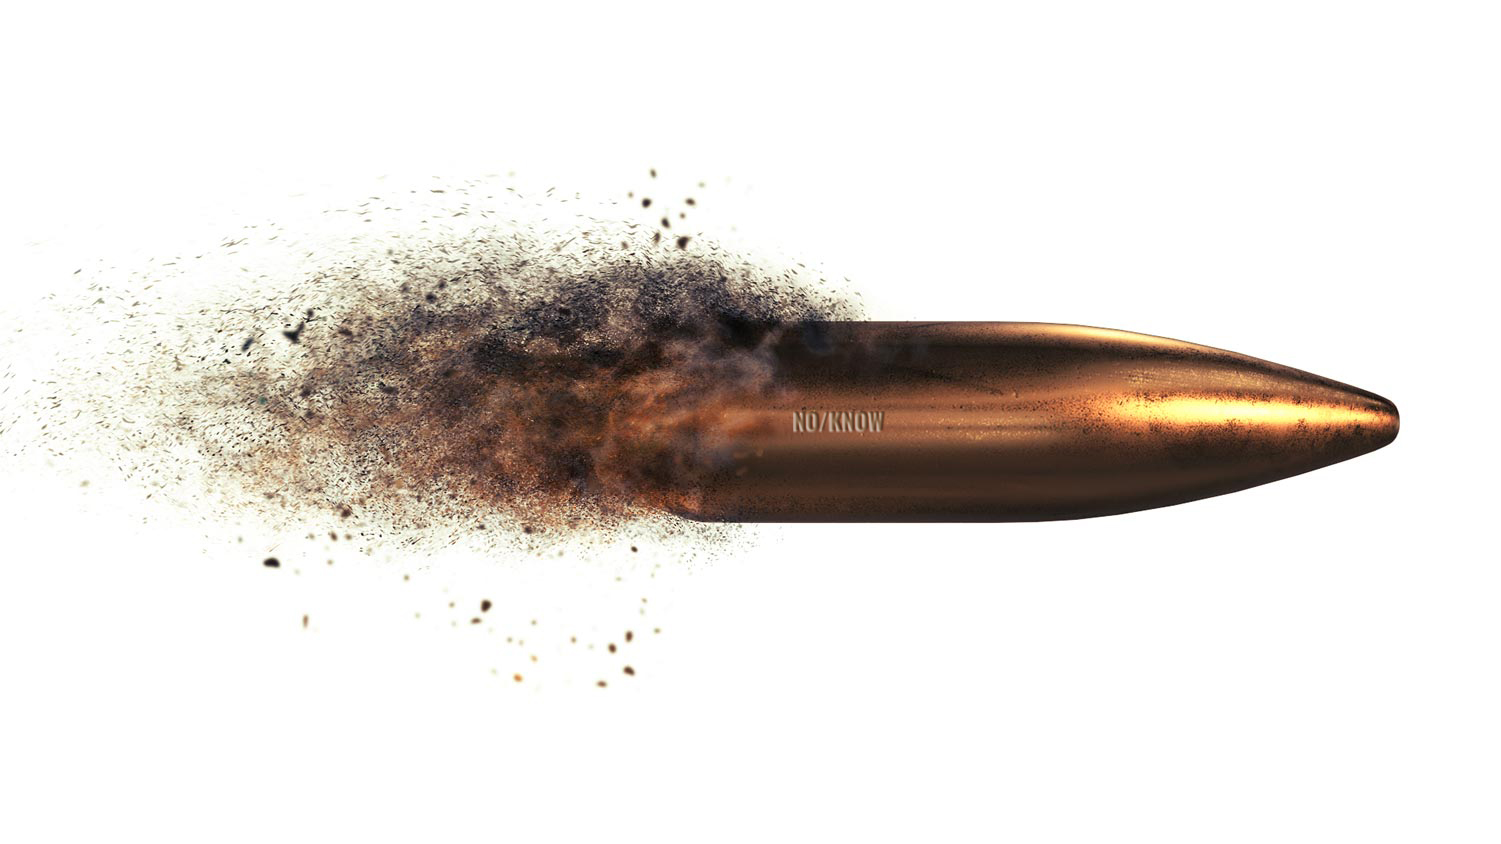 A bullet marked with two words, no and know, is flying through the air and photographed in slow motion